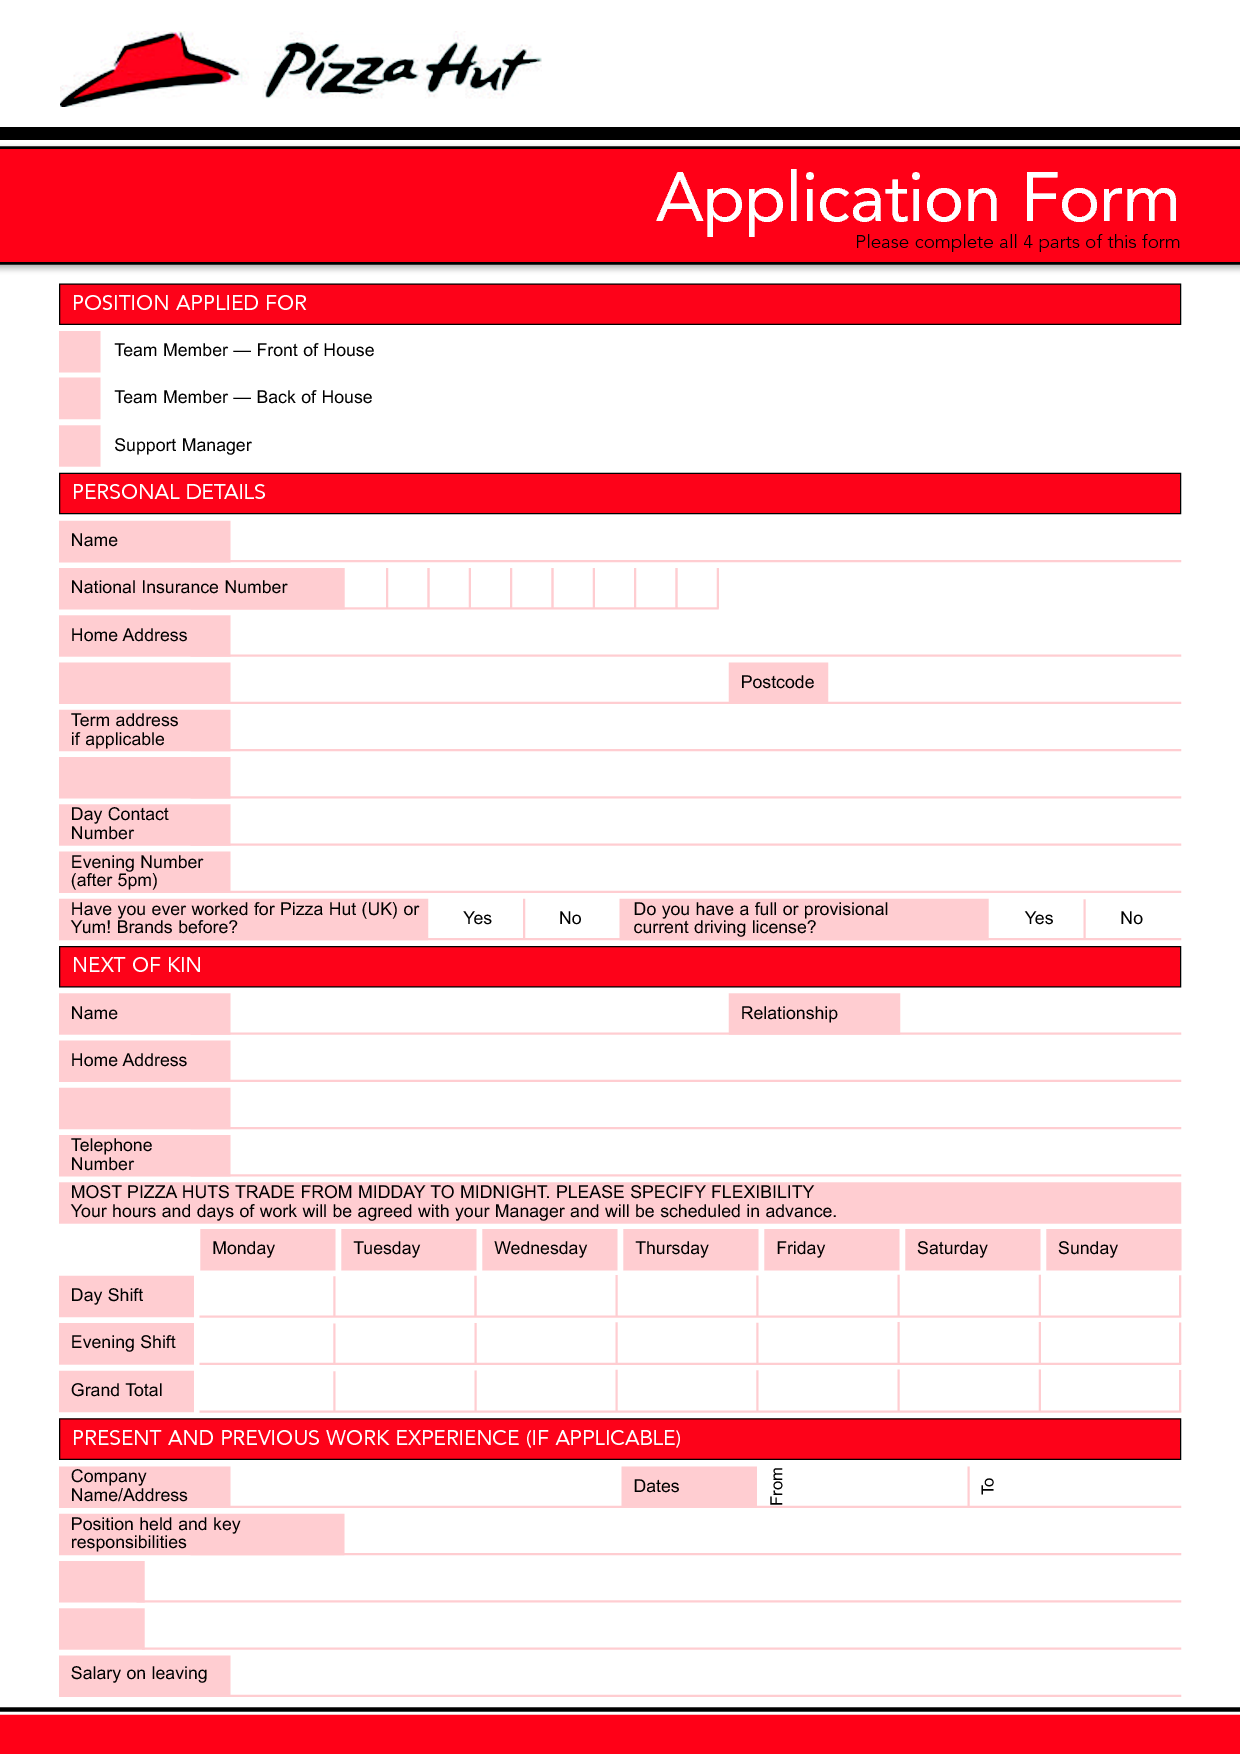 Pizza Hut Job Application Form Application Form for